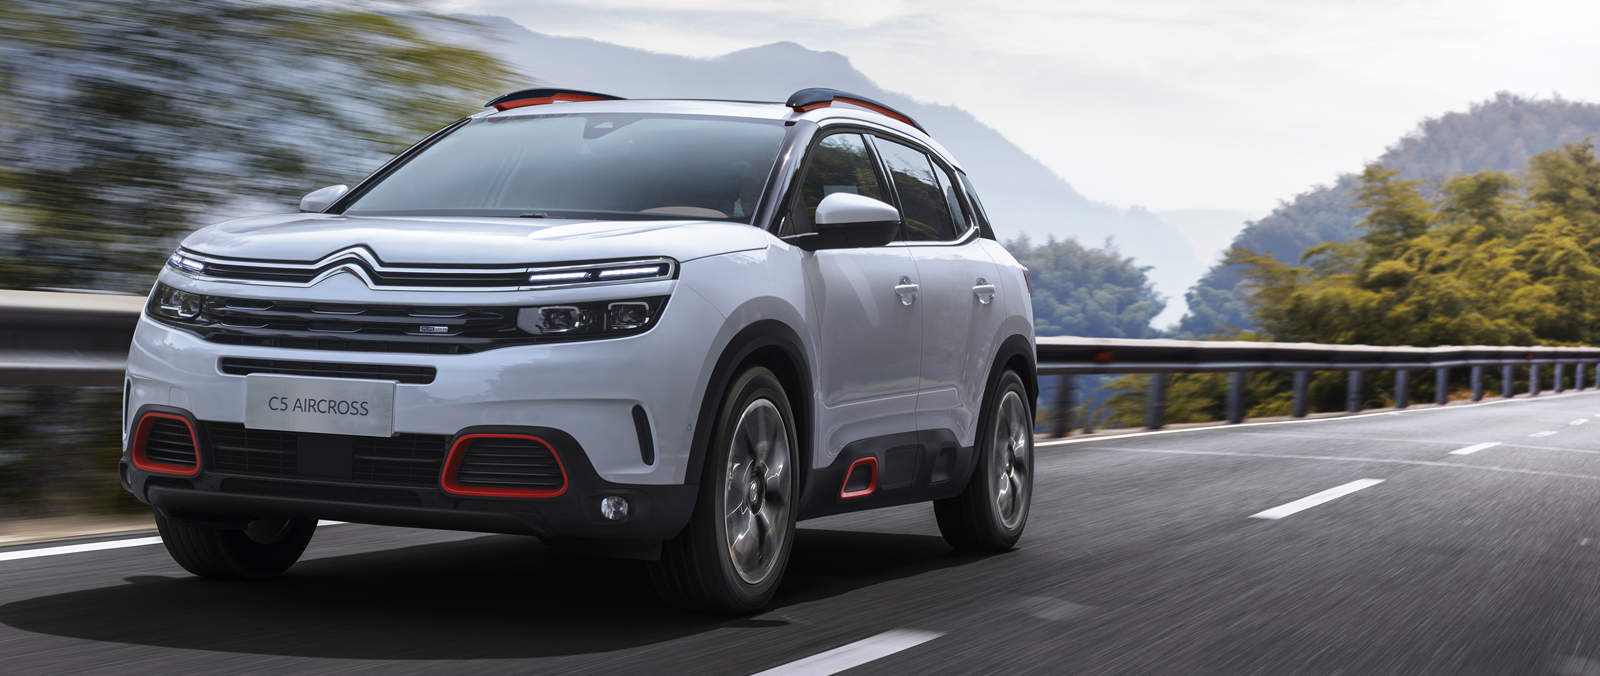 Citroen C5 Aircross in Shanghai onthuld